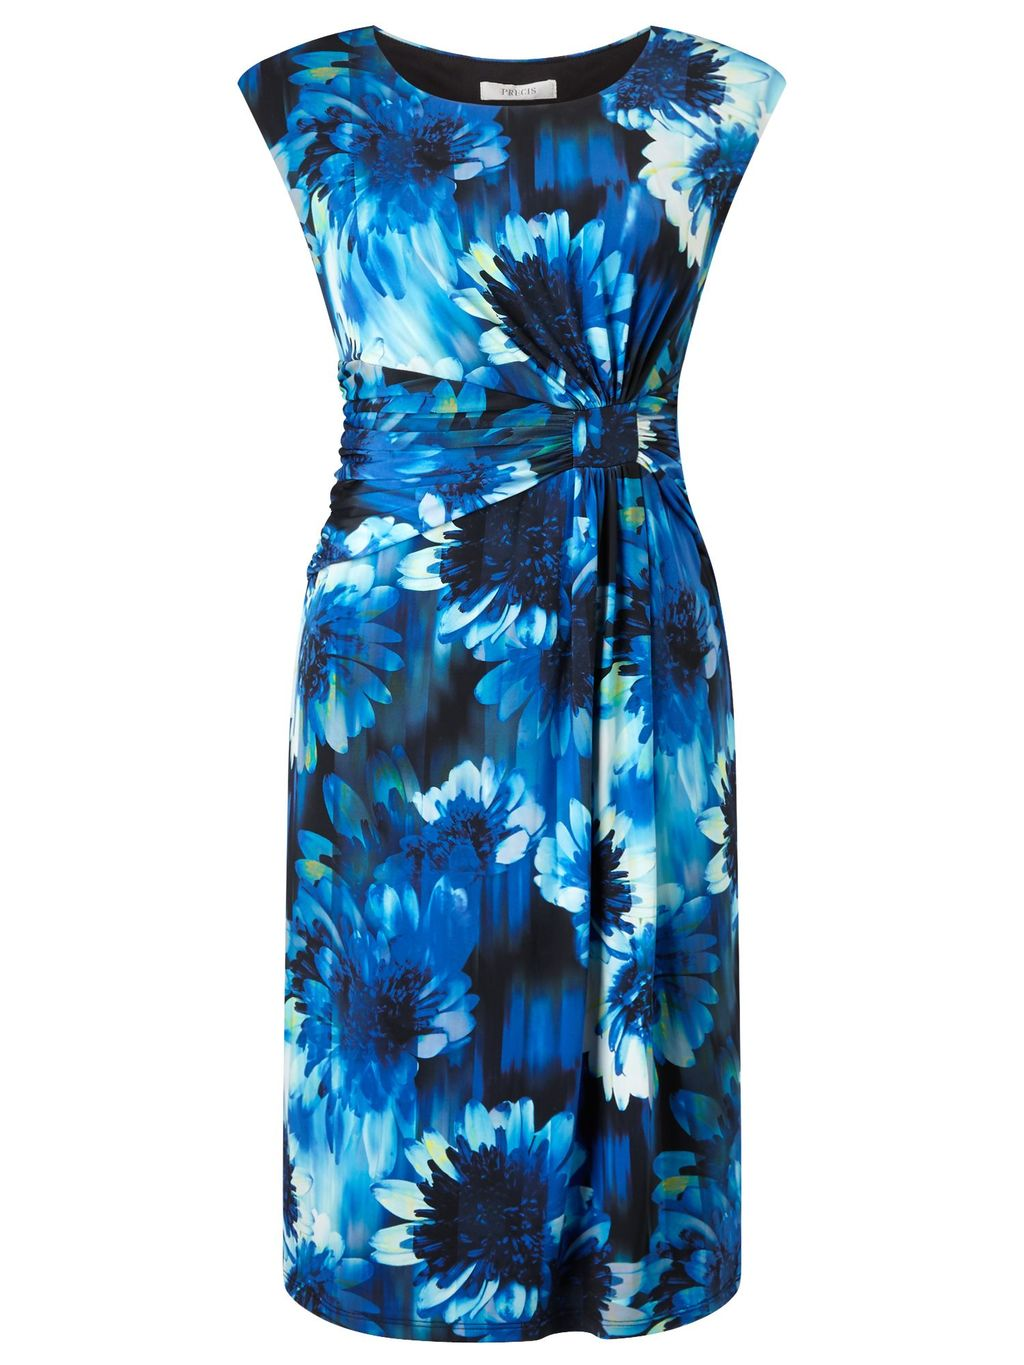 Blurred Floral Dress, Multi Coloured - style: shift; sleeve style: capped; fit: tailored/fitted; secondary colour: ivory/cream; predominant colour: navy; occasions: evening; length: just above the knee; fibres: polyester/polyamide - stretch; neckline: crew; hip detail: subtle/flattering hip detail; sleeve length: short sleeve; pattern type: fabric; pattern: florals; texture group: jersey - stretchy/drapey; multicoloured: multicoloured; season: s/s 2016; wardrobe: event